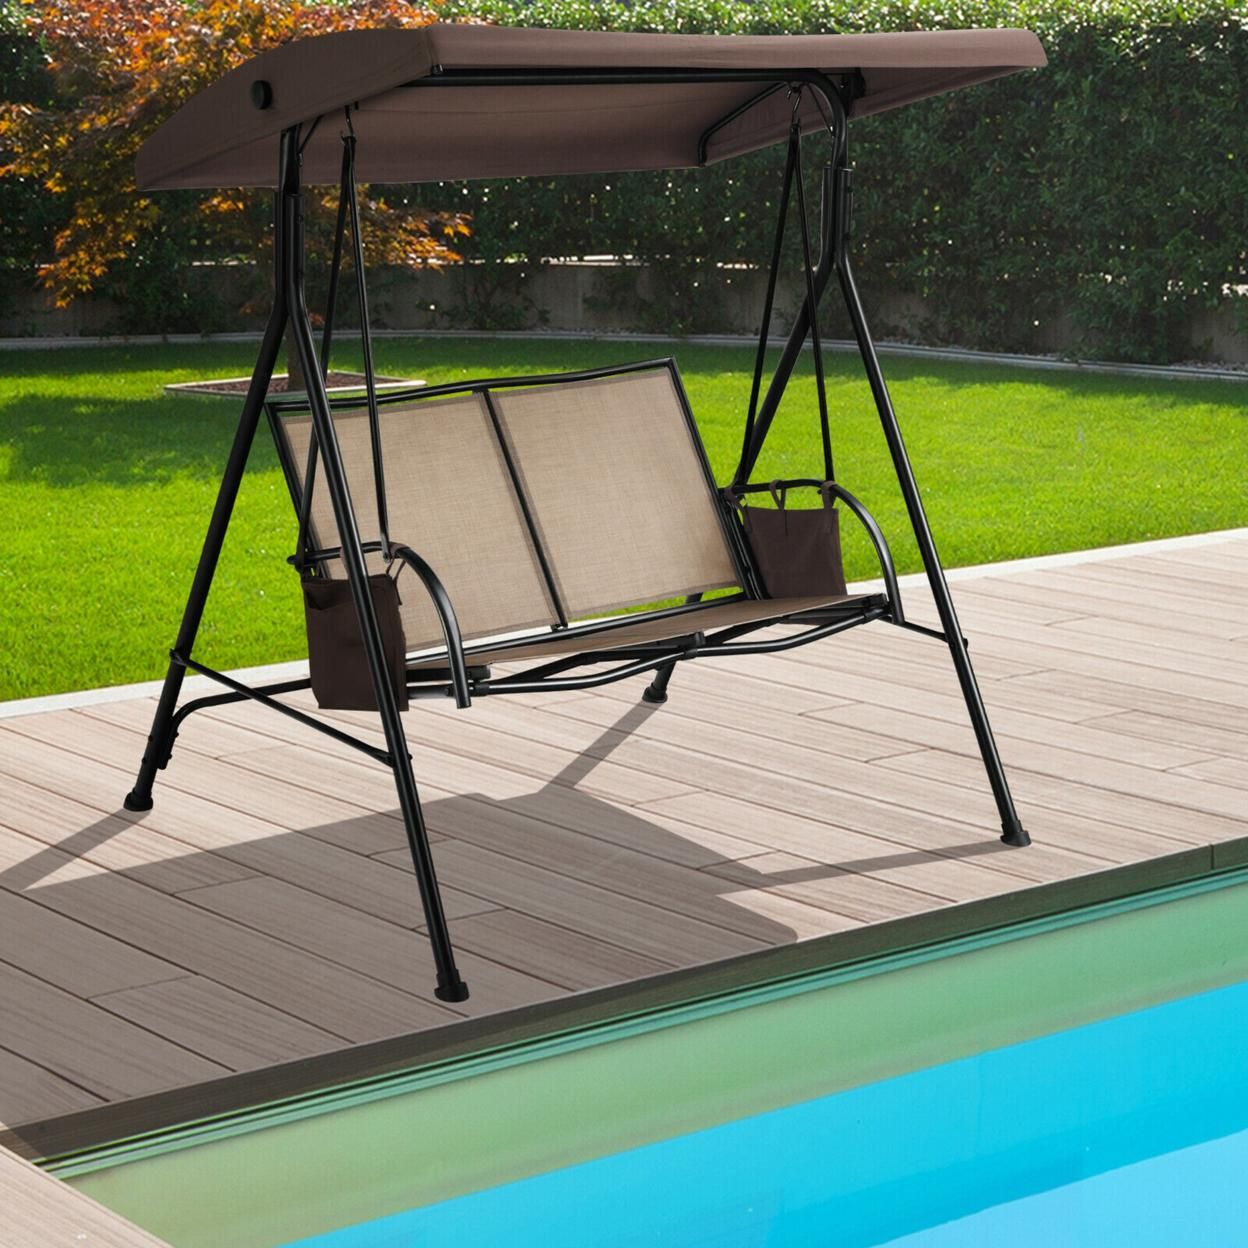 Gymax 2-Person Adjustable Canopy Swing Chair Patio Outdoor w/ 2 Storage Pockets